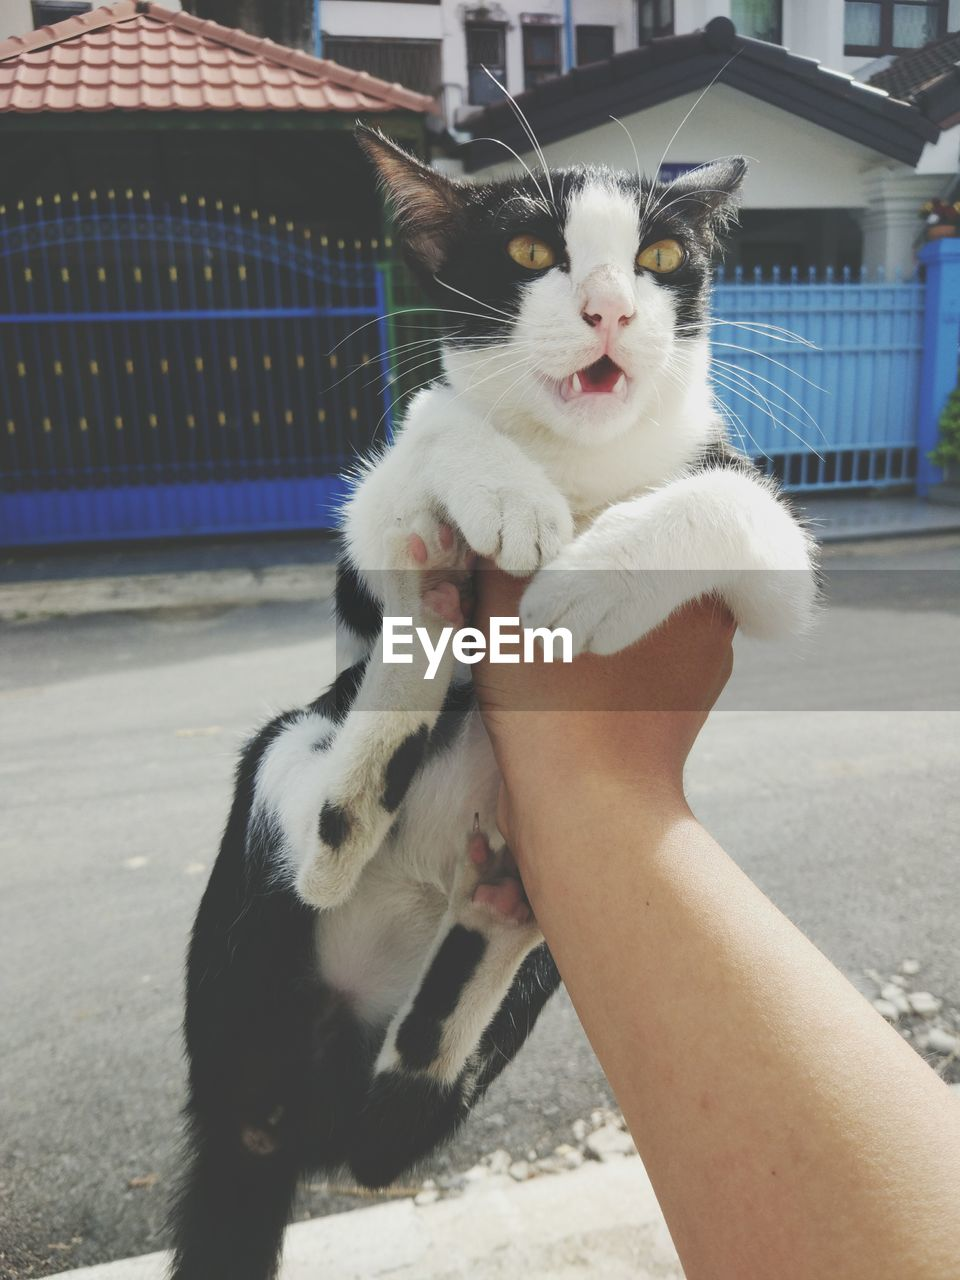 Cropped Image Of Hand Holding Cat On Street